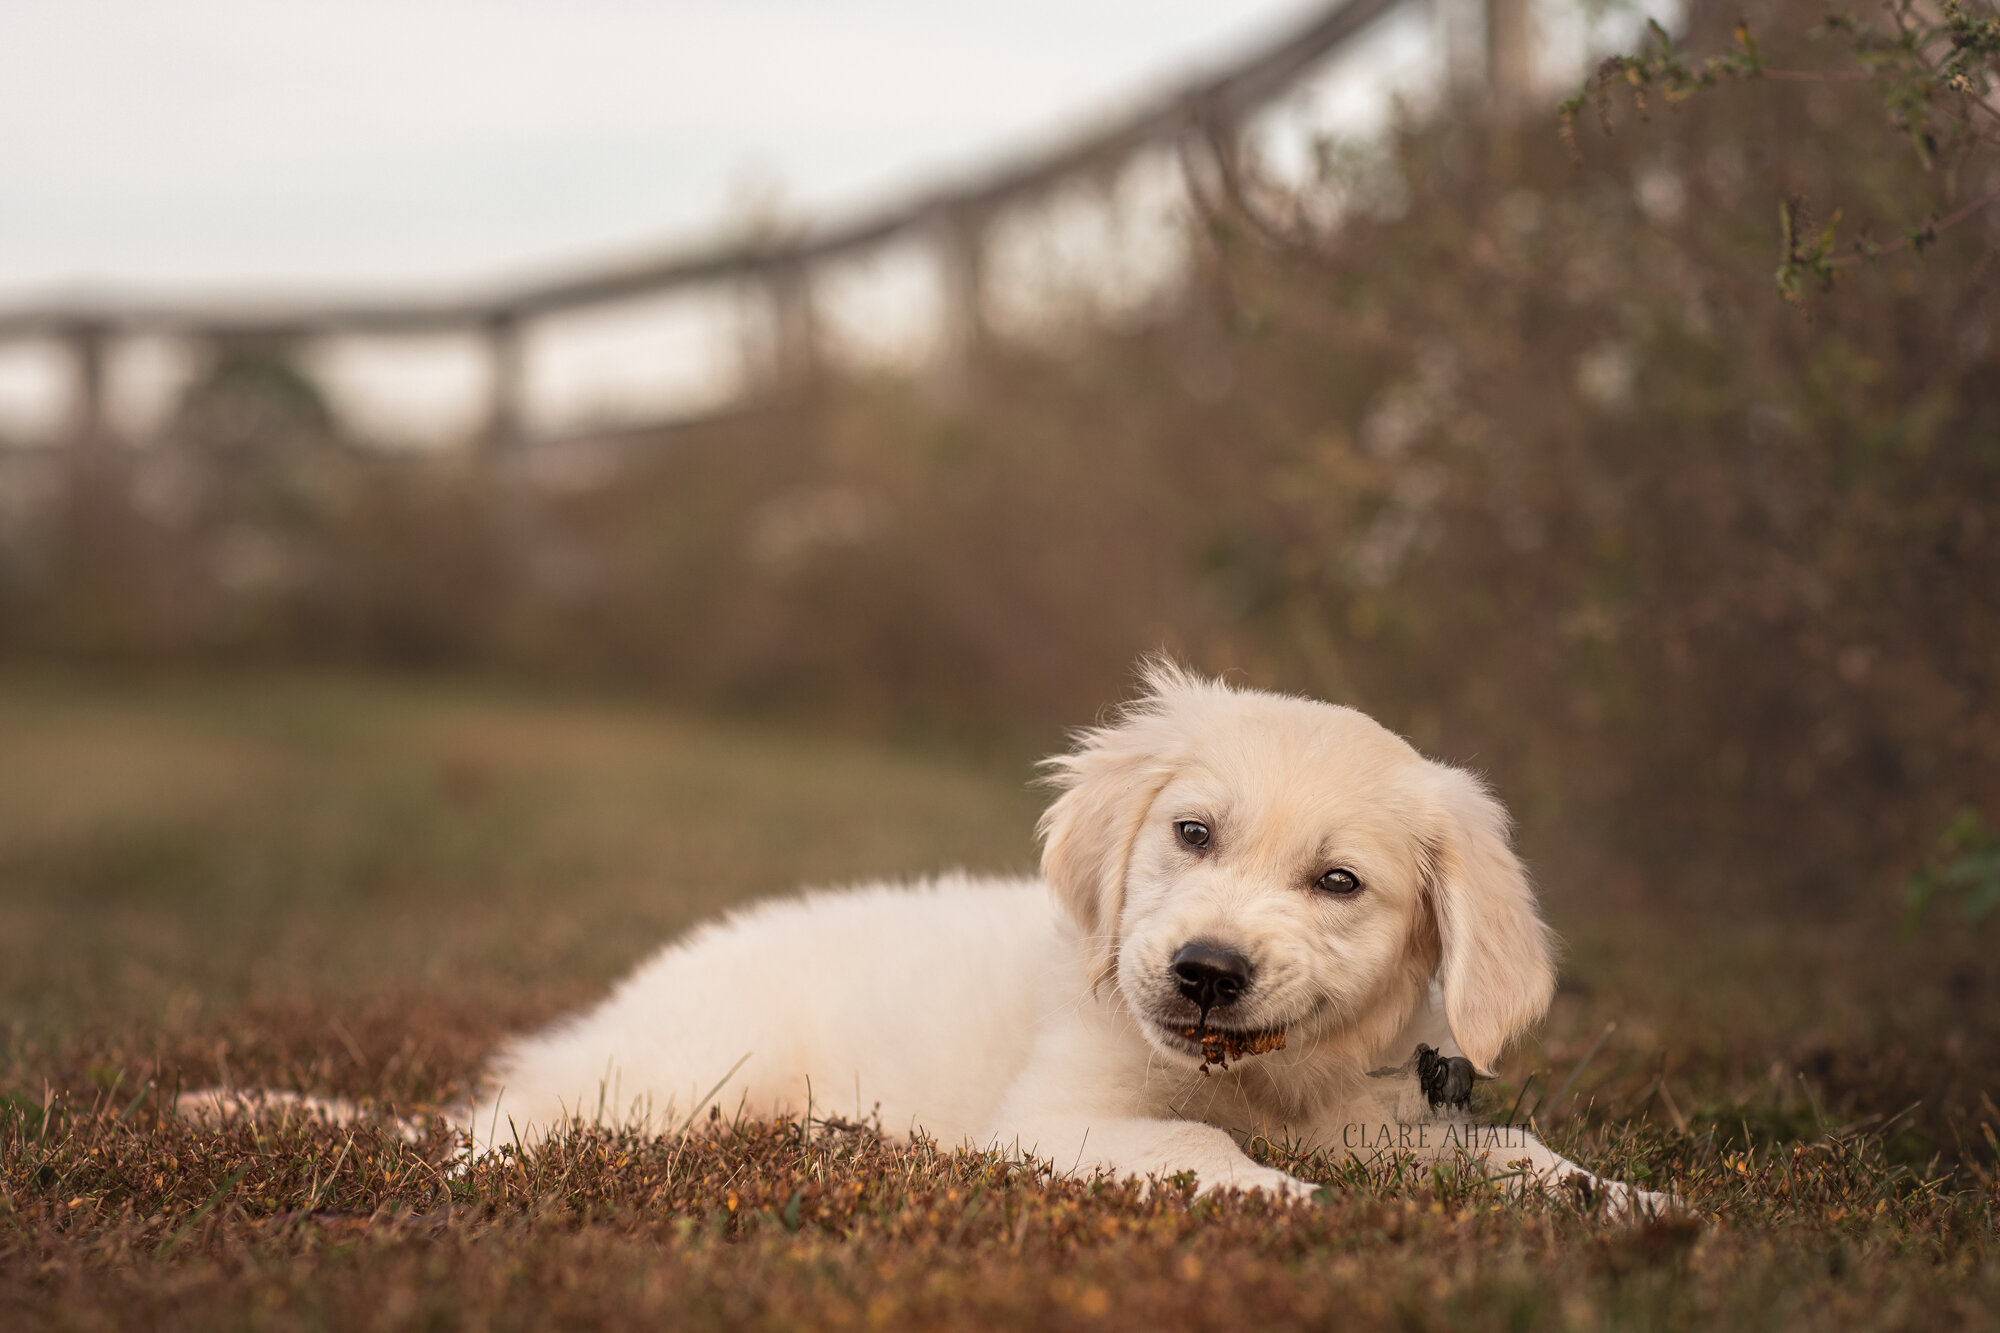 pet_portrait_photgorapher_potomac_MD_pet_photographer_middletown_MD_Pet_portraits_maryland_best_pet_portrait_photographer_maryland_golden_retriever_frederick_md-2.jpg